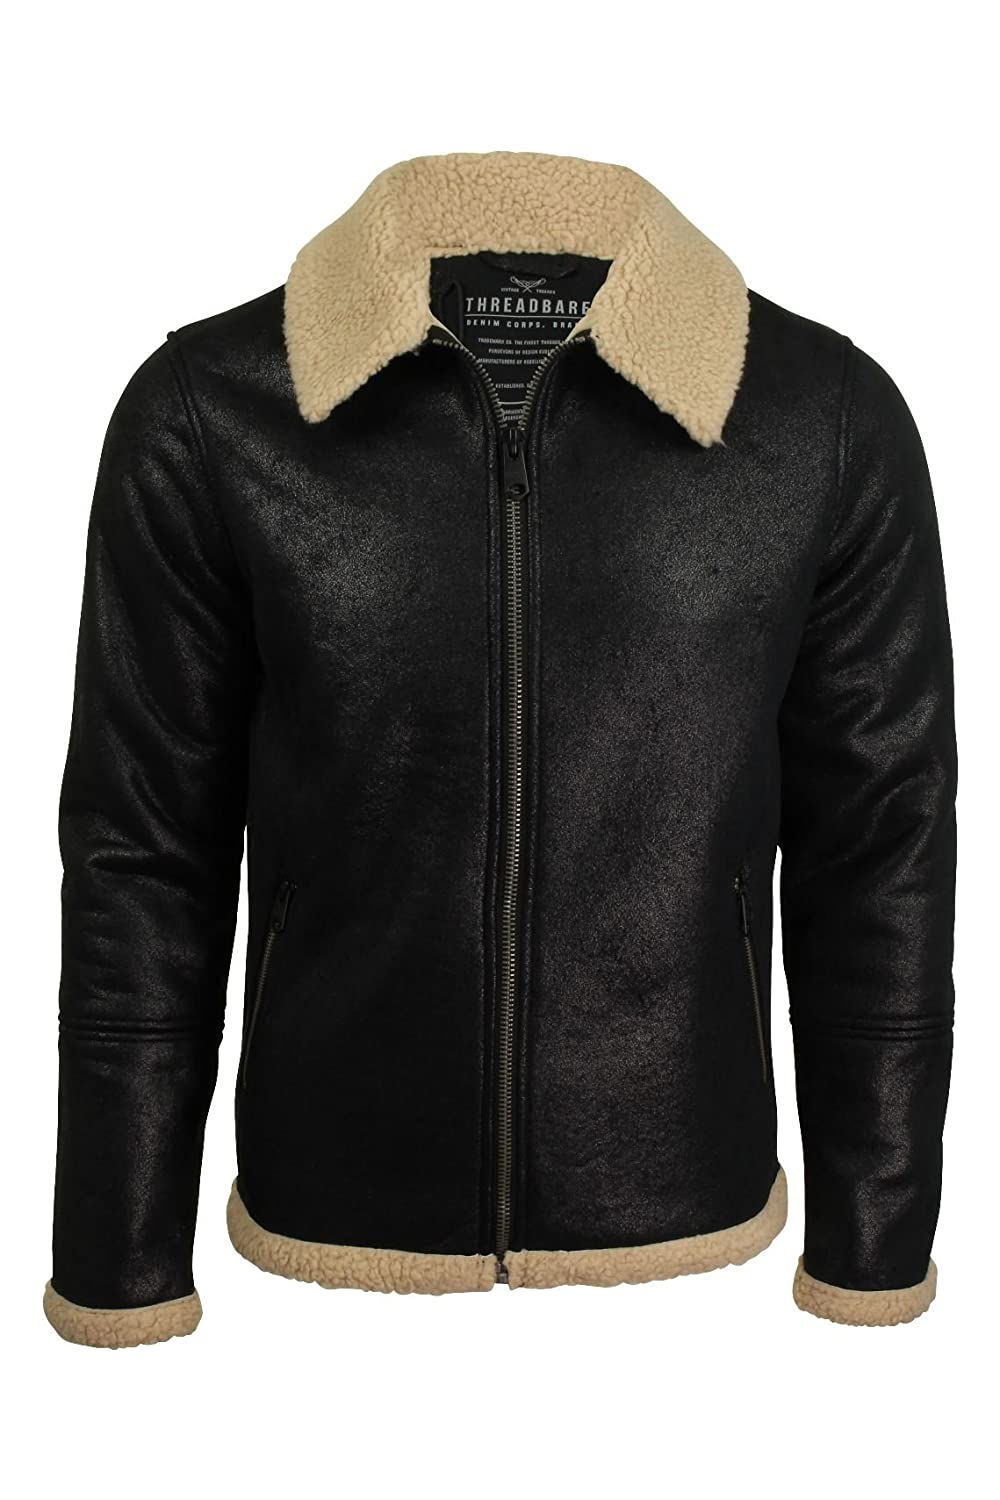 Threadbare Mens Flying Jacket Lancaster